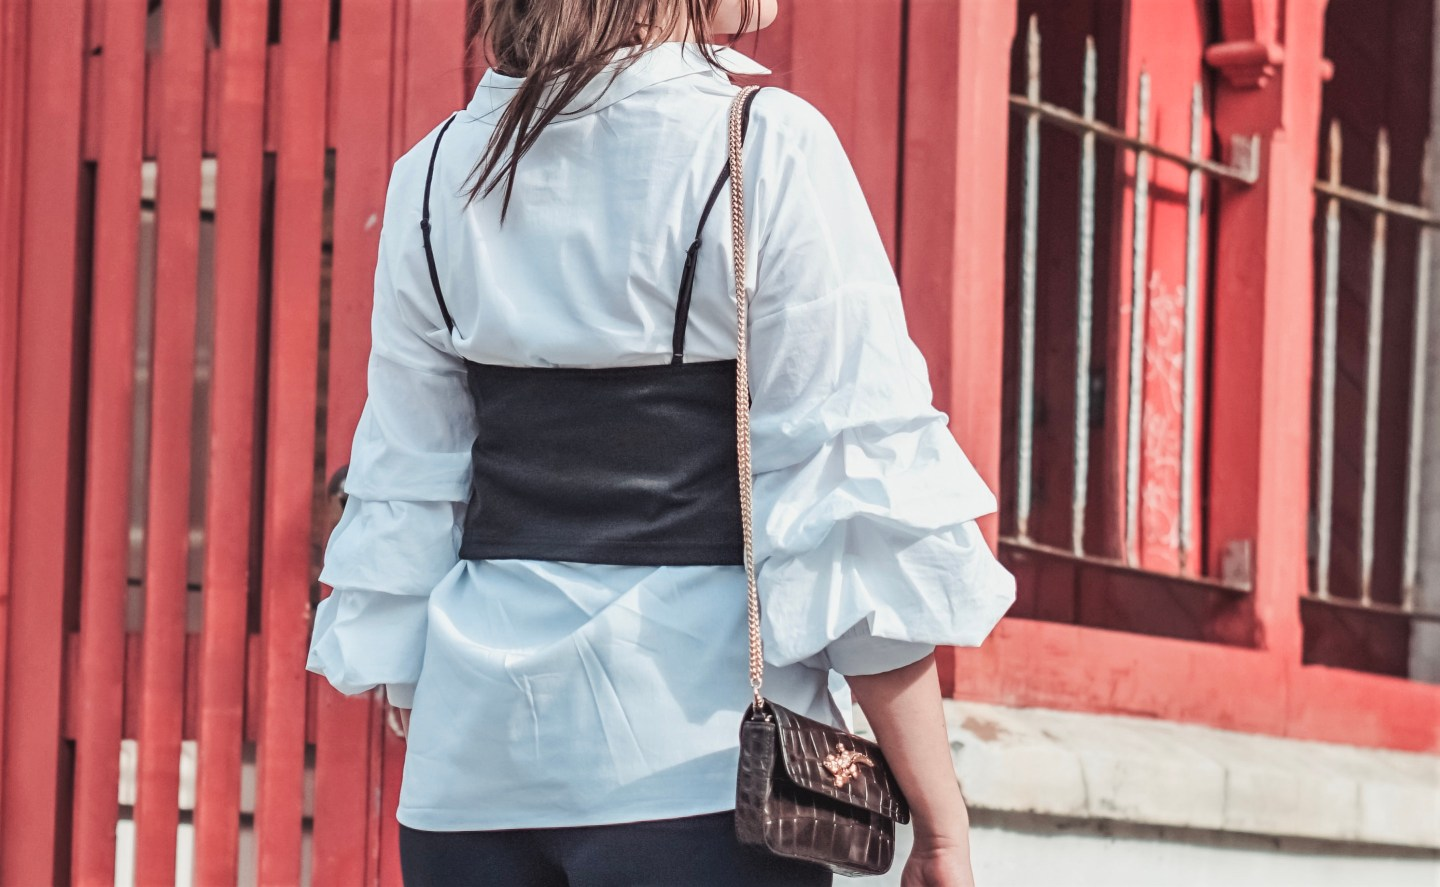 Style diaries: Poplin Shirt with Pleated Sleeves, Sequin Crop Top, Flared Trousers, High Heel Shoes, Crocodile Embellished Shoulder Bag. #fashion #style #ootd #sequins